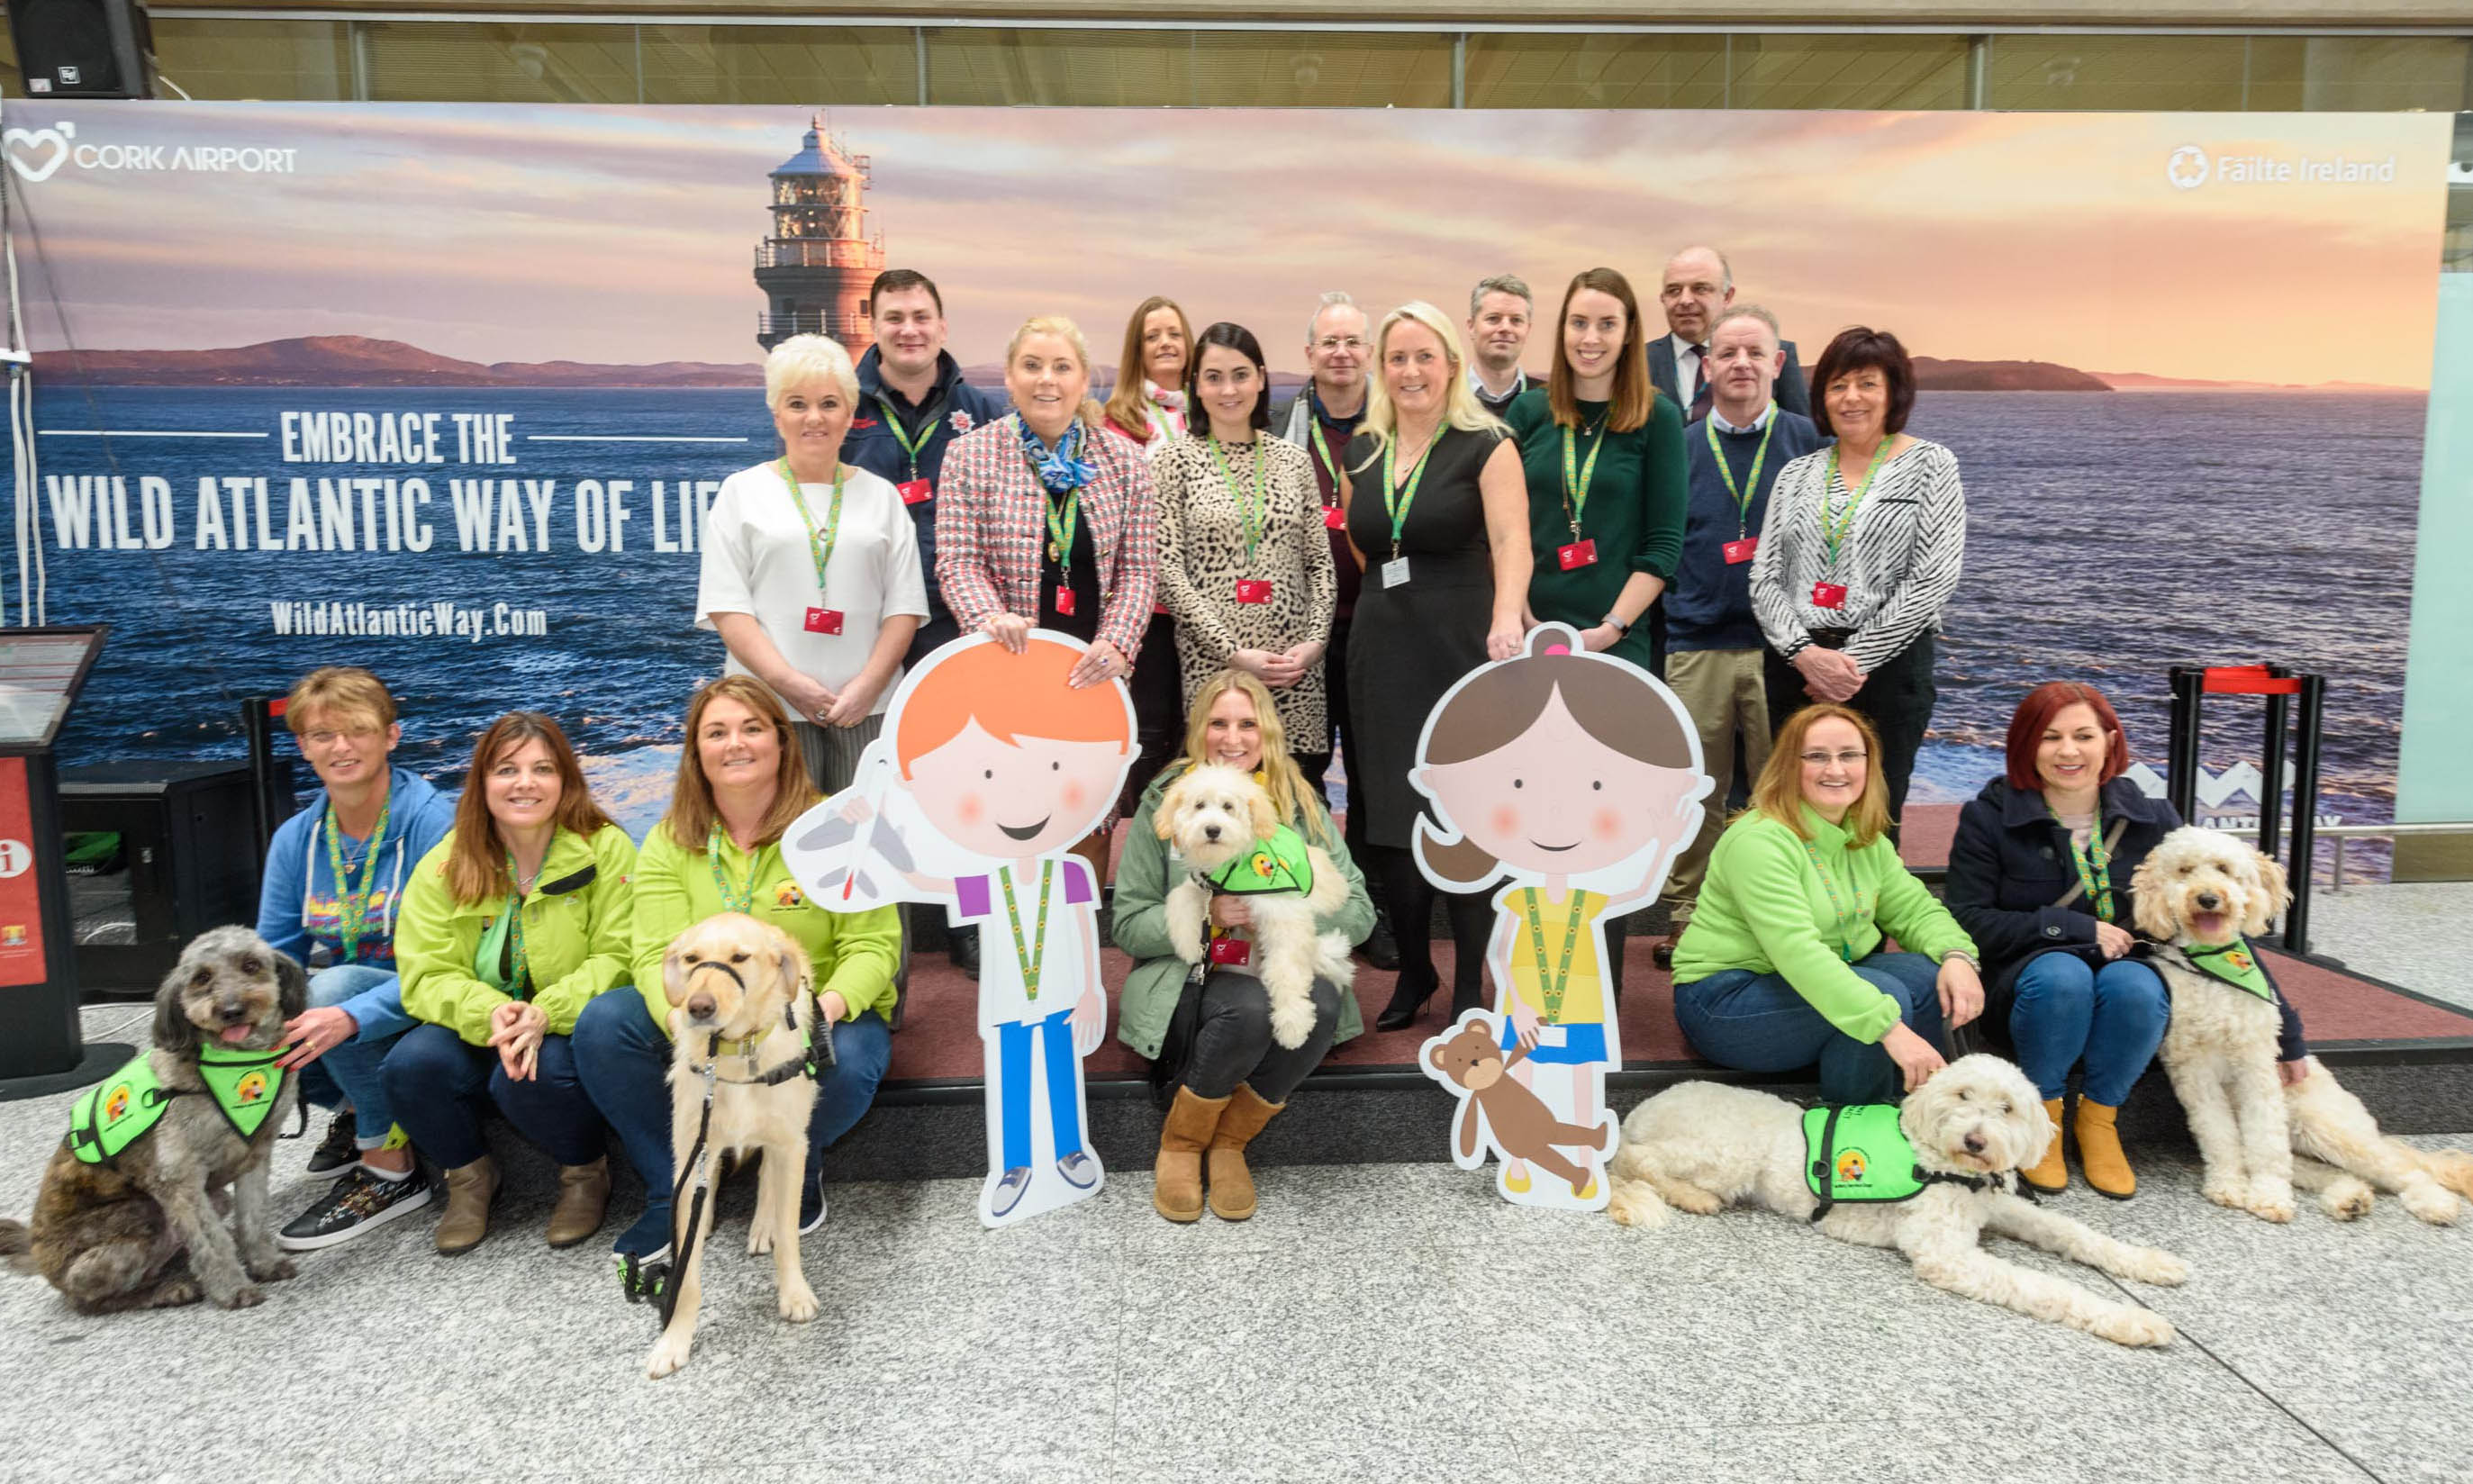 Cork Airport Introduces Lanyard Scheme For Passengers With Hidden Disabilities